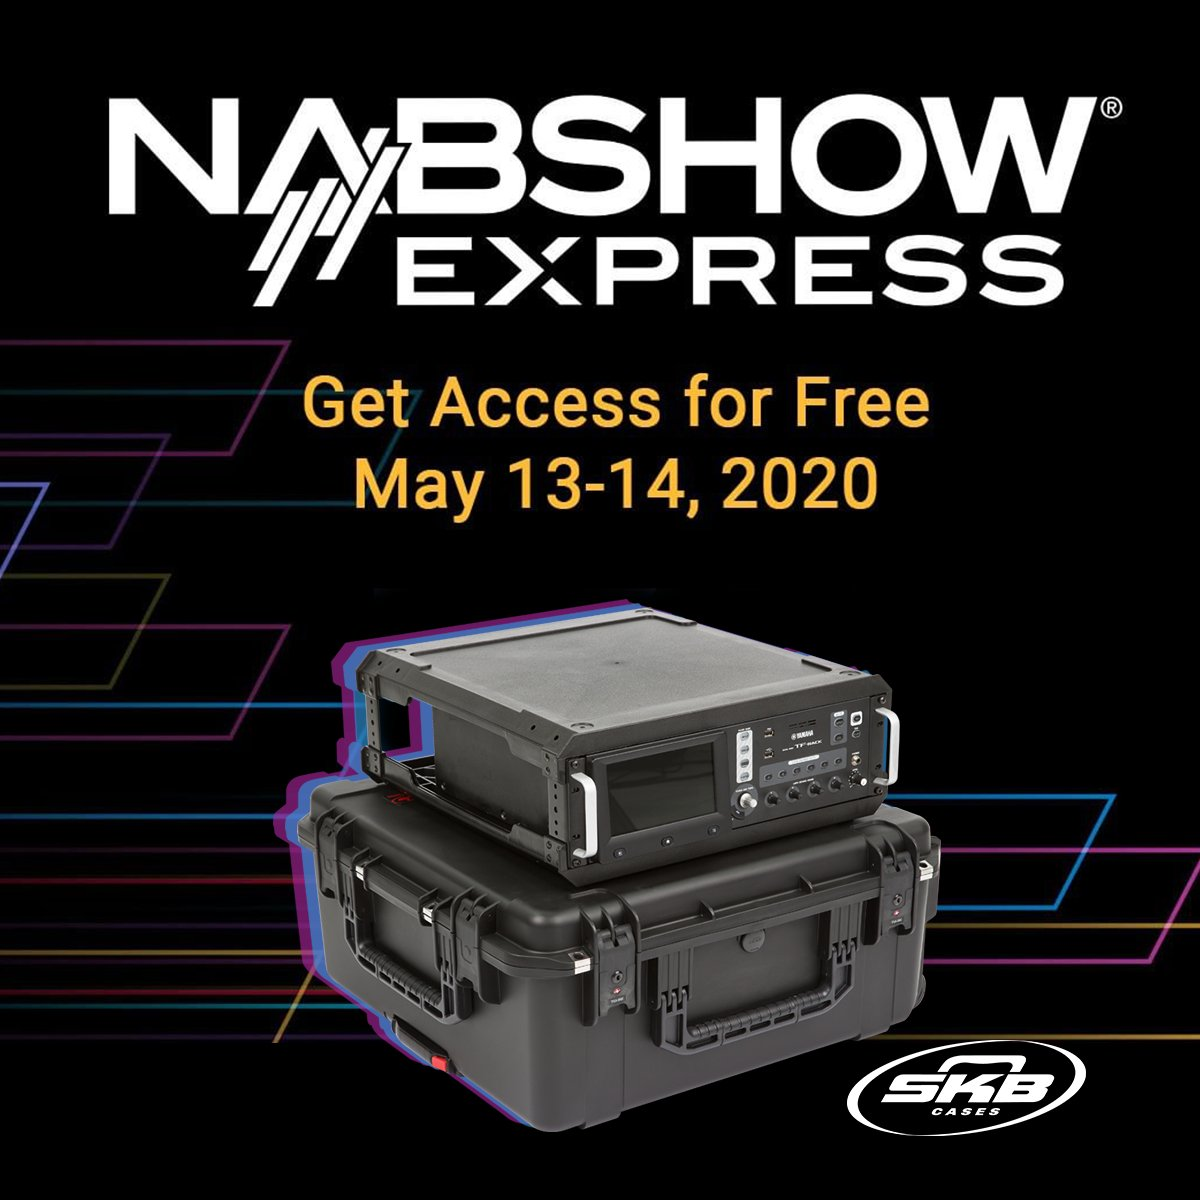 While we may not be able to meet in Las Vegas this year, that doesnt mean the #NABShow has to be cancelled entirely. #NABShowExpress is happening online now and its free! See SKBs highlighted products ➡️ bit.ly/2zxDRVd